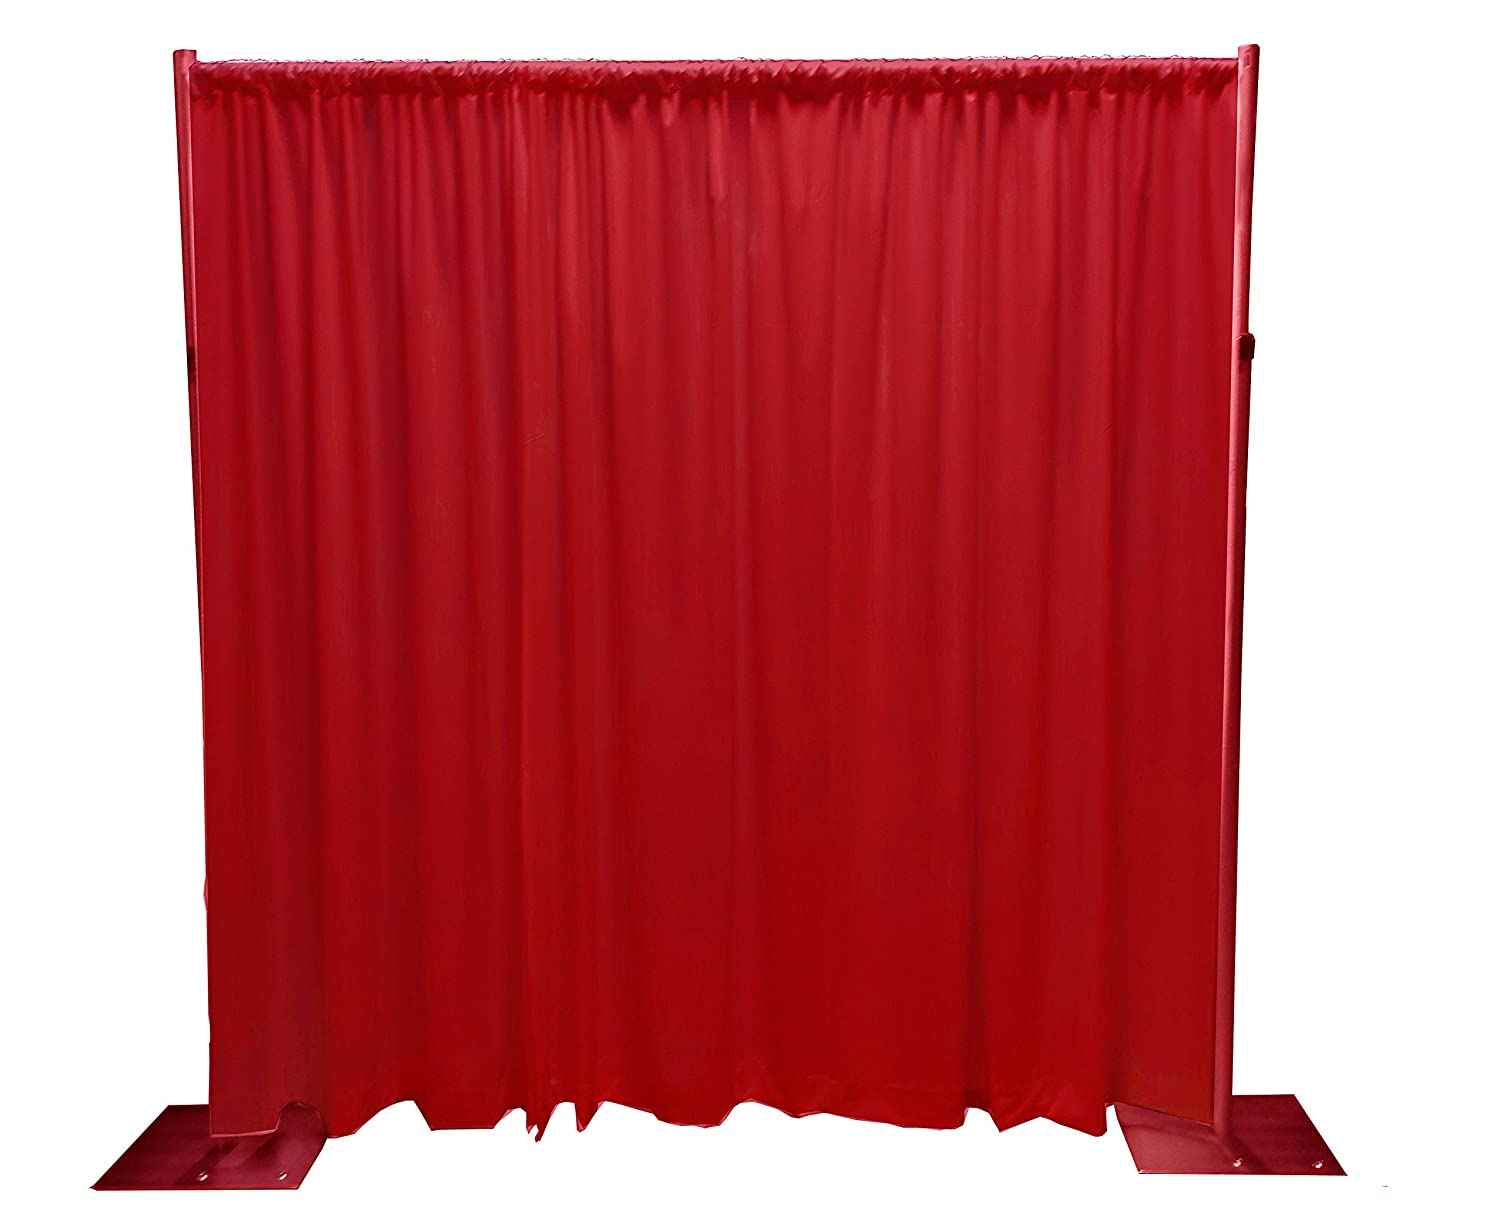 drape enclosure wholesale alibaba pipe supplies manufacturers showroom used com at photo and drapes booth suppliers